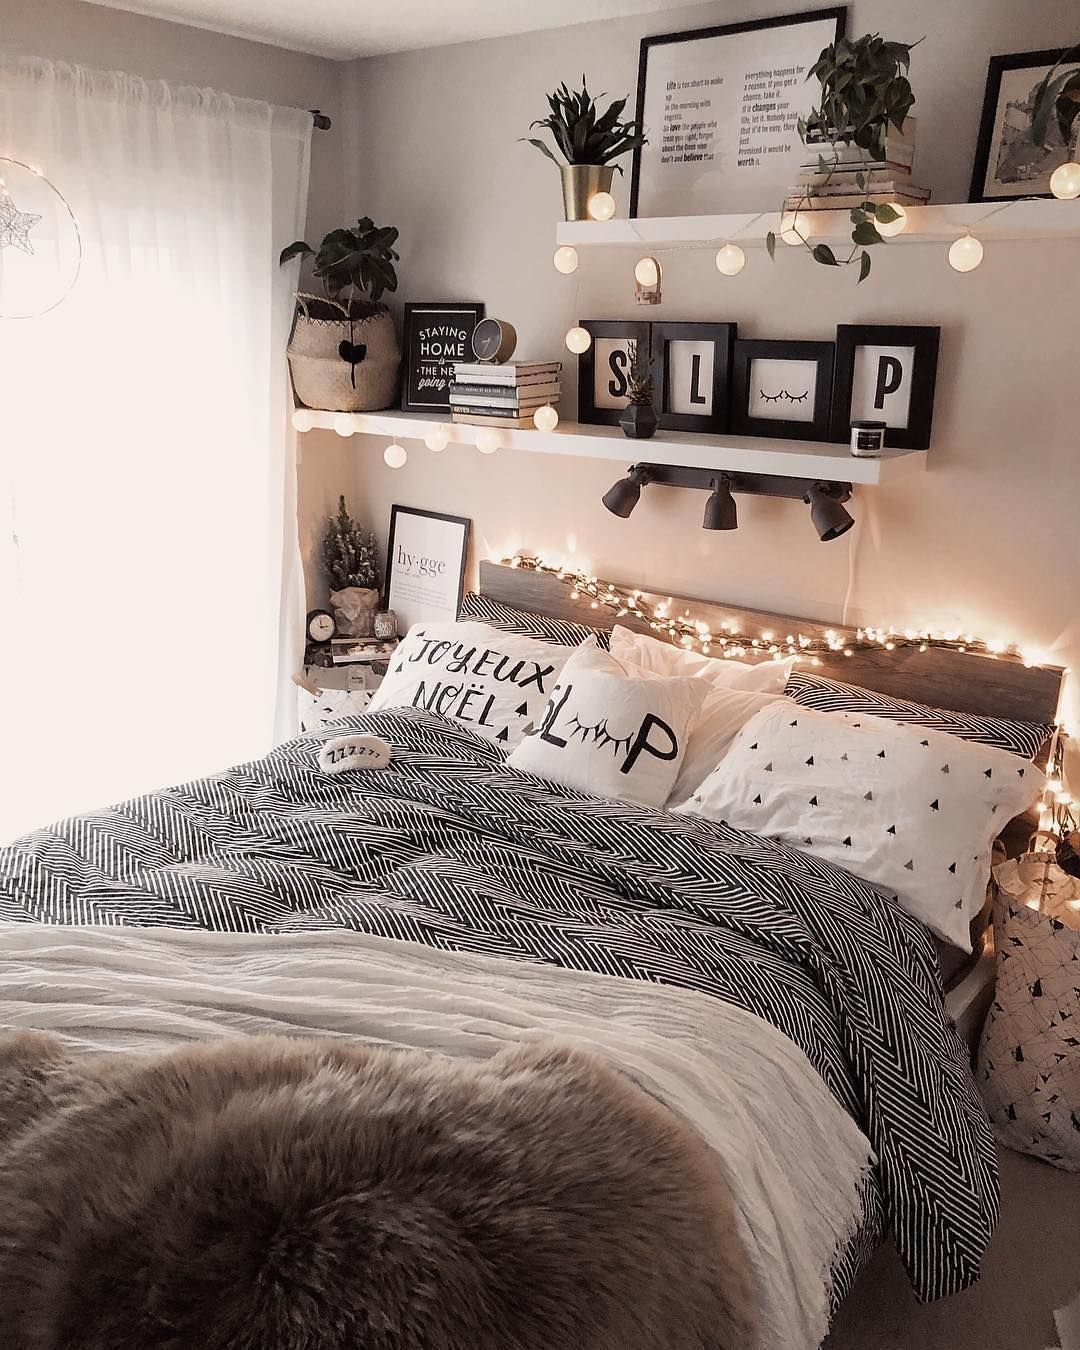 Tumblr room inspiration: 50 great bedroom decorating ideas for teenagers!